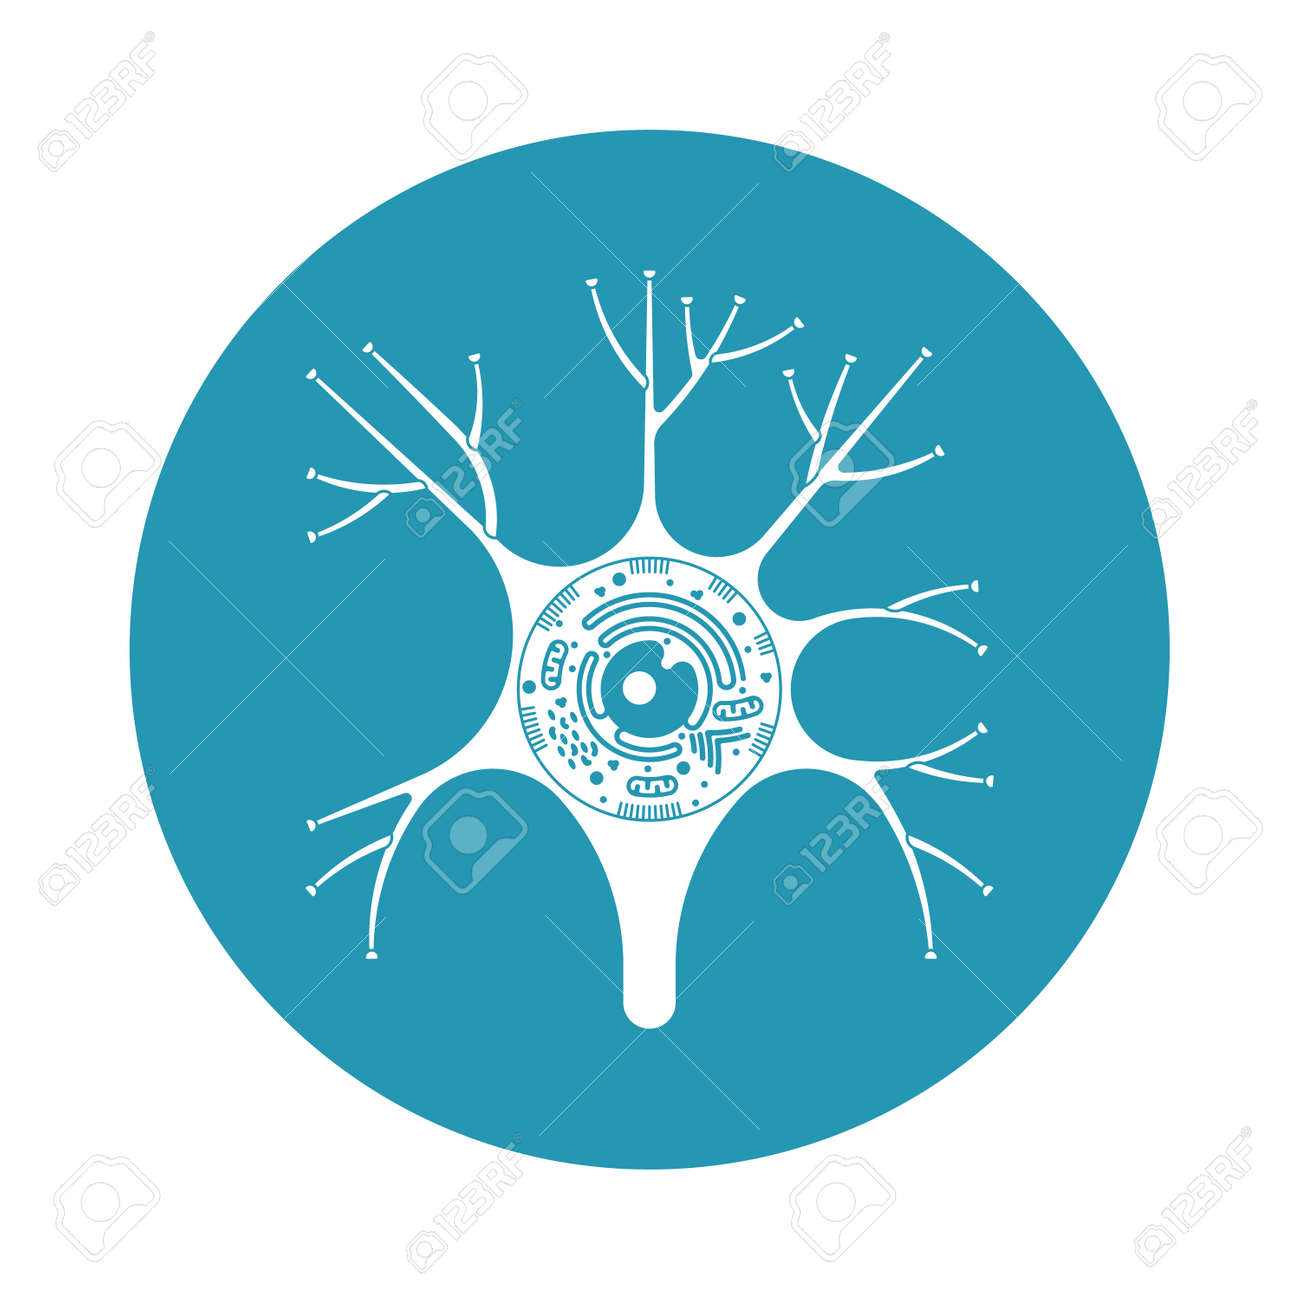 Isolated Neurone Cell Biology Icon. Neurone Cell Anatomy Structure ...